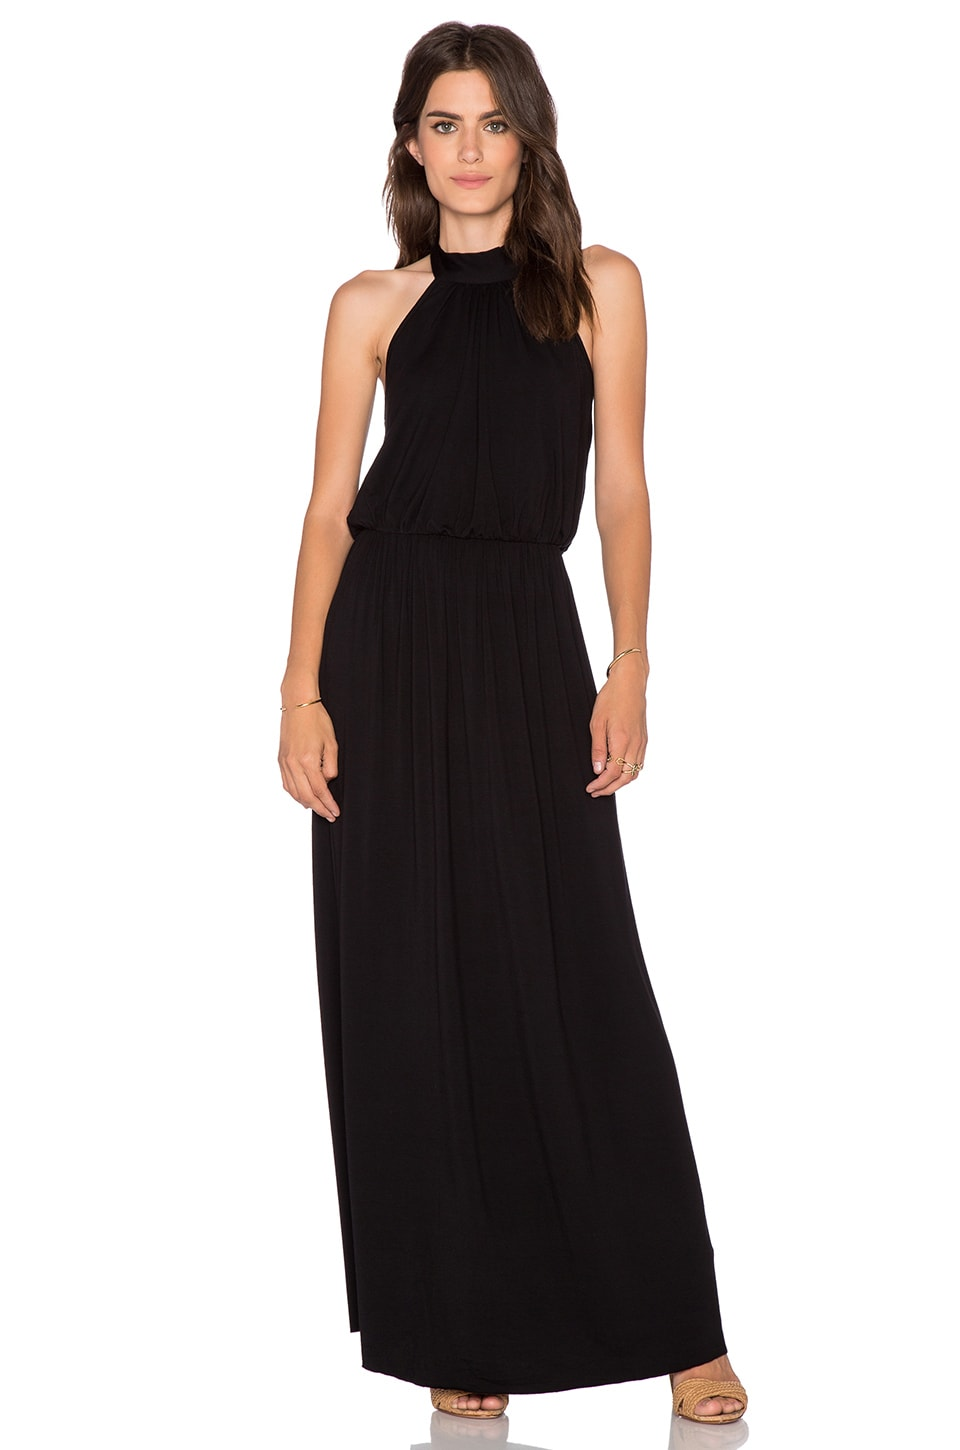 Clayton Evelyn Maxi Dress in Black